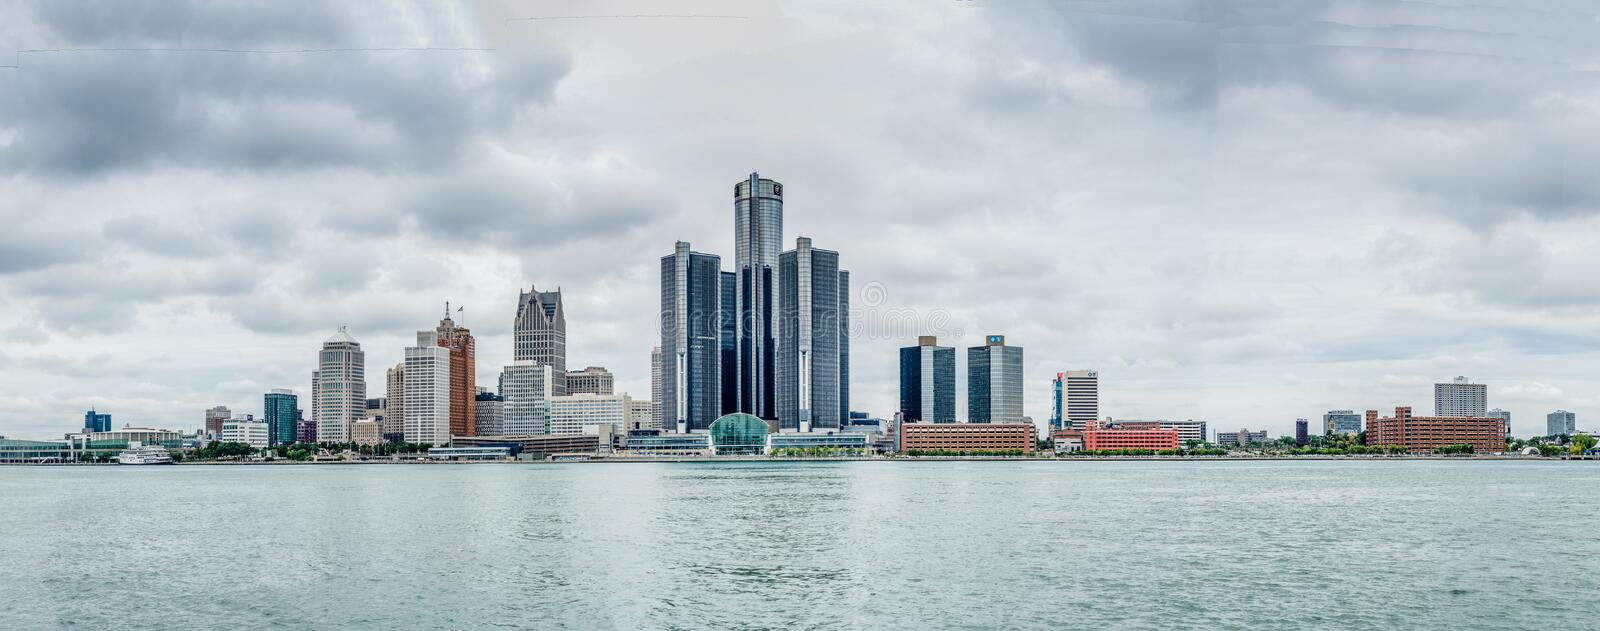 Building of General Motors near river Detroit stock images